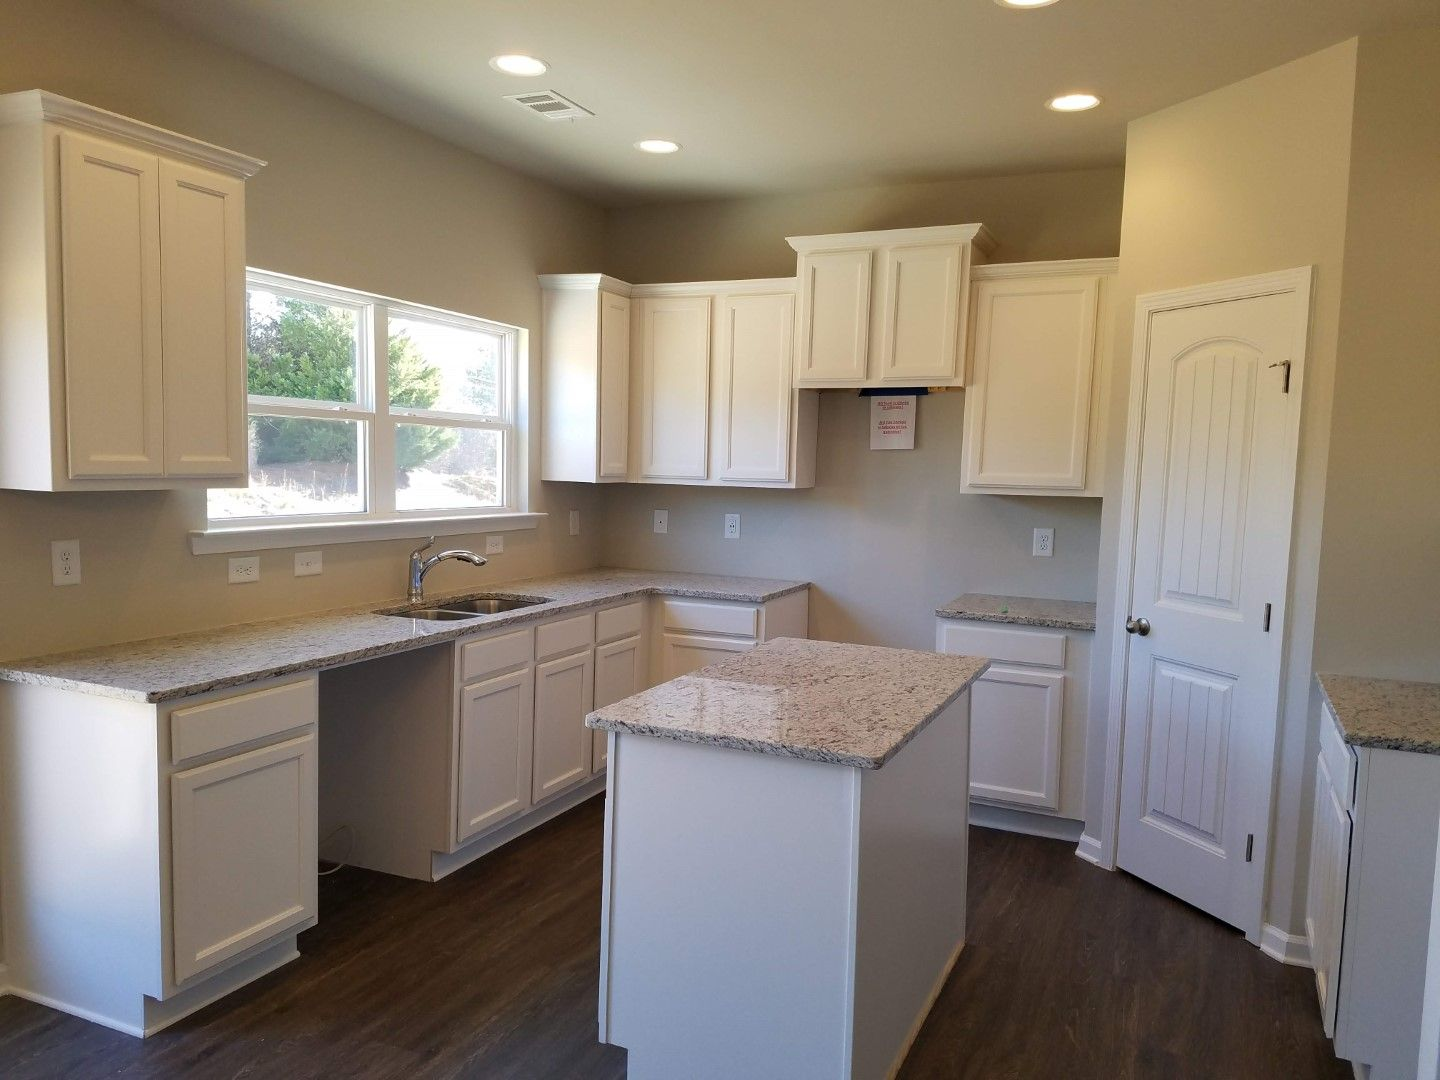 Kitchen-in-Mayfield-at-Manchester Meadows-in-Villa Rica